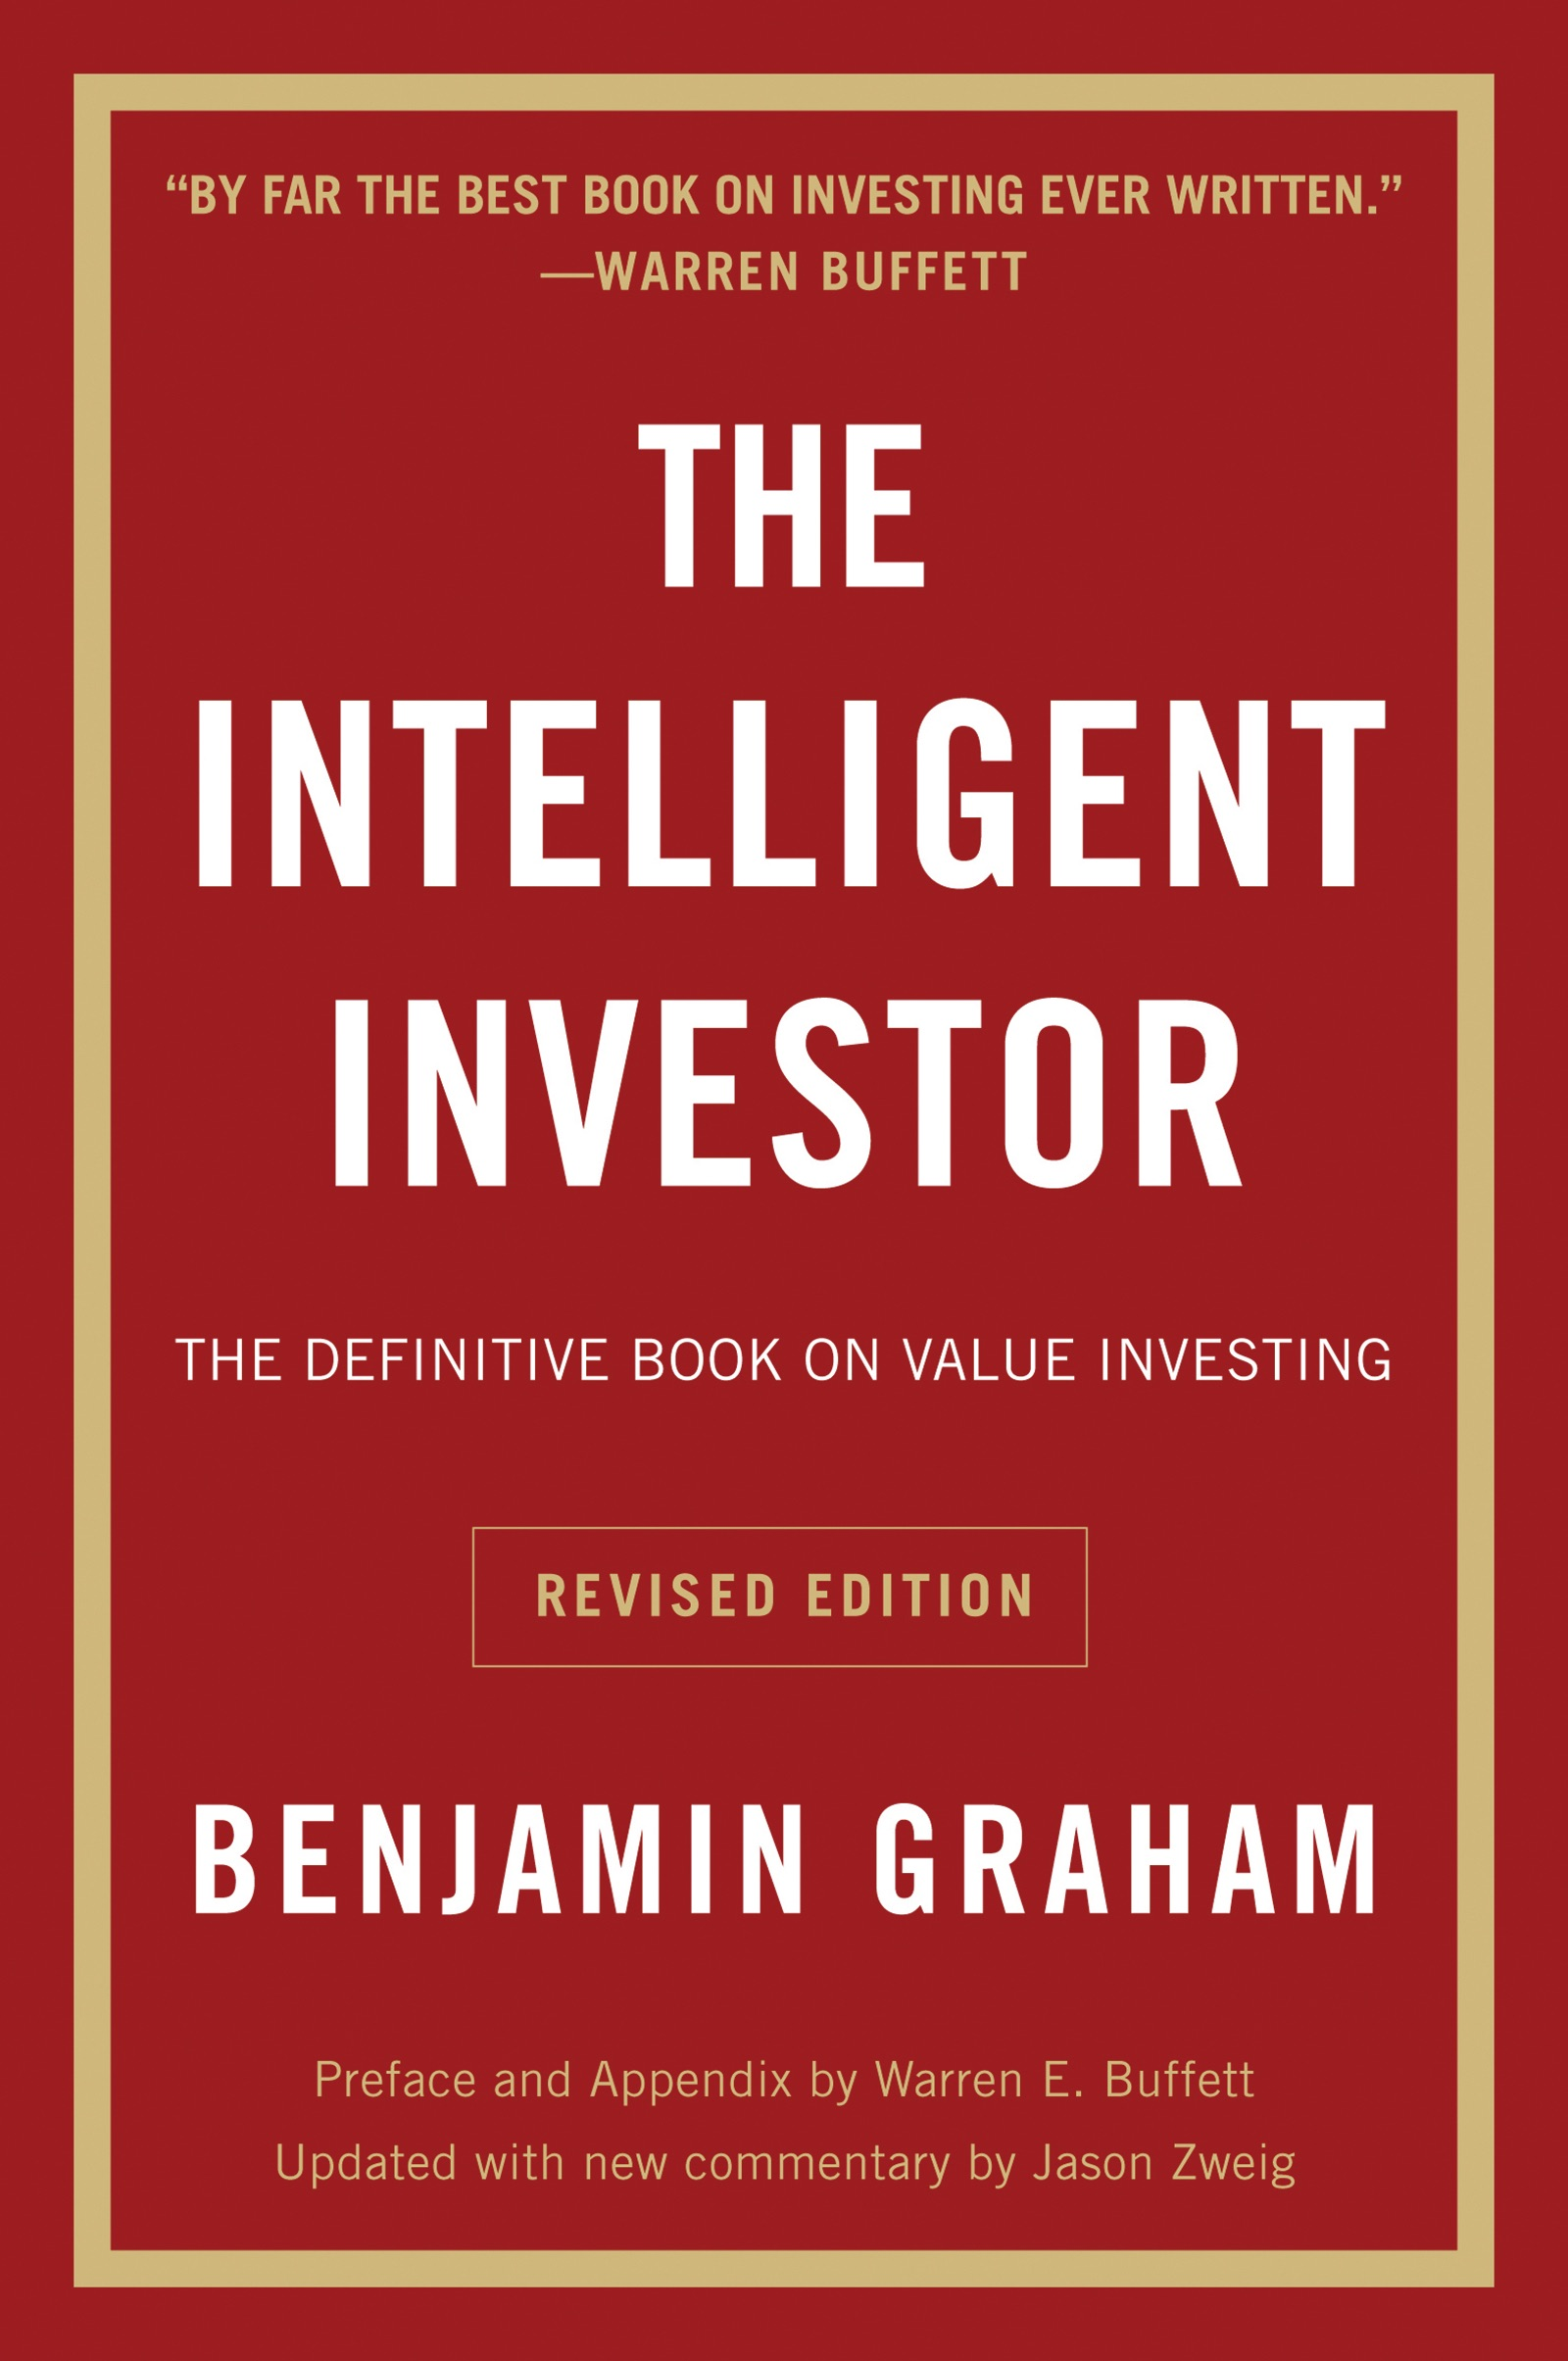 Book Cover of The Intelligent Investor